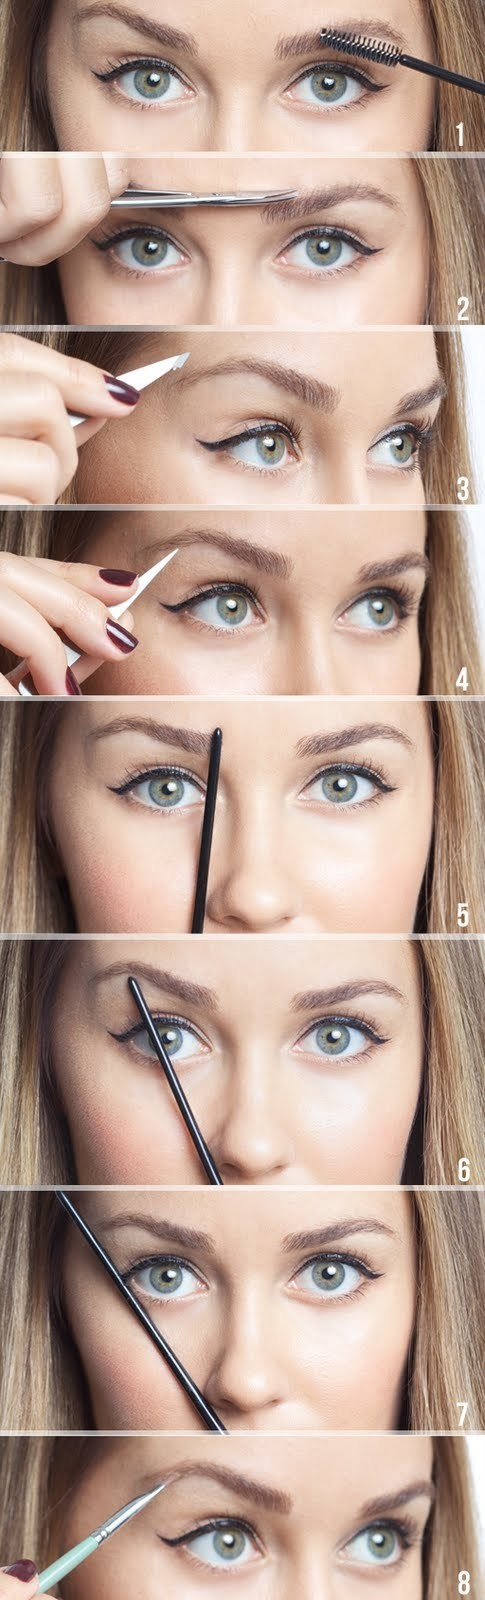 how to curve brows